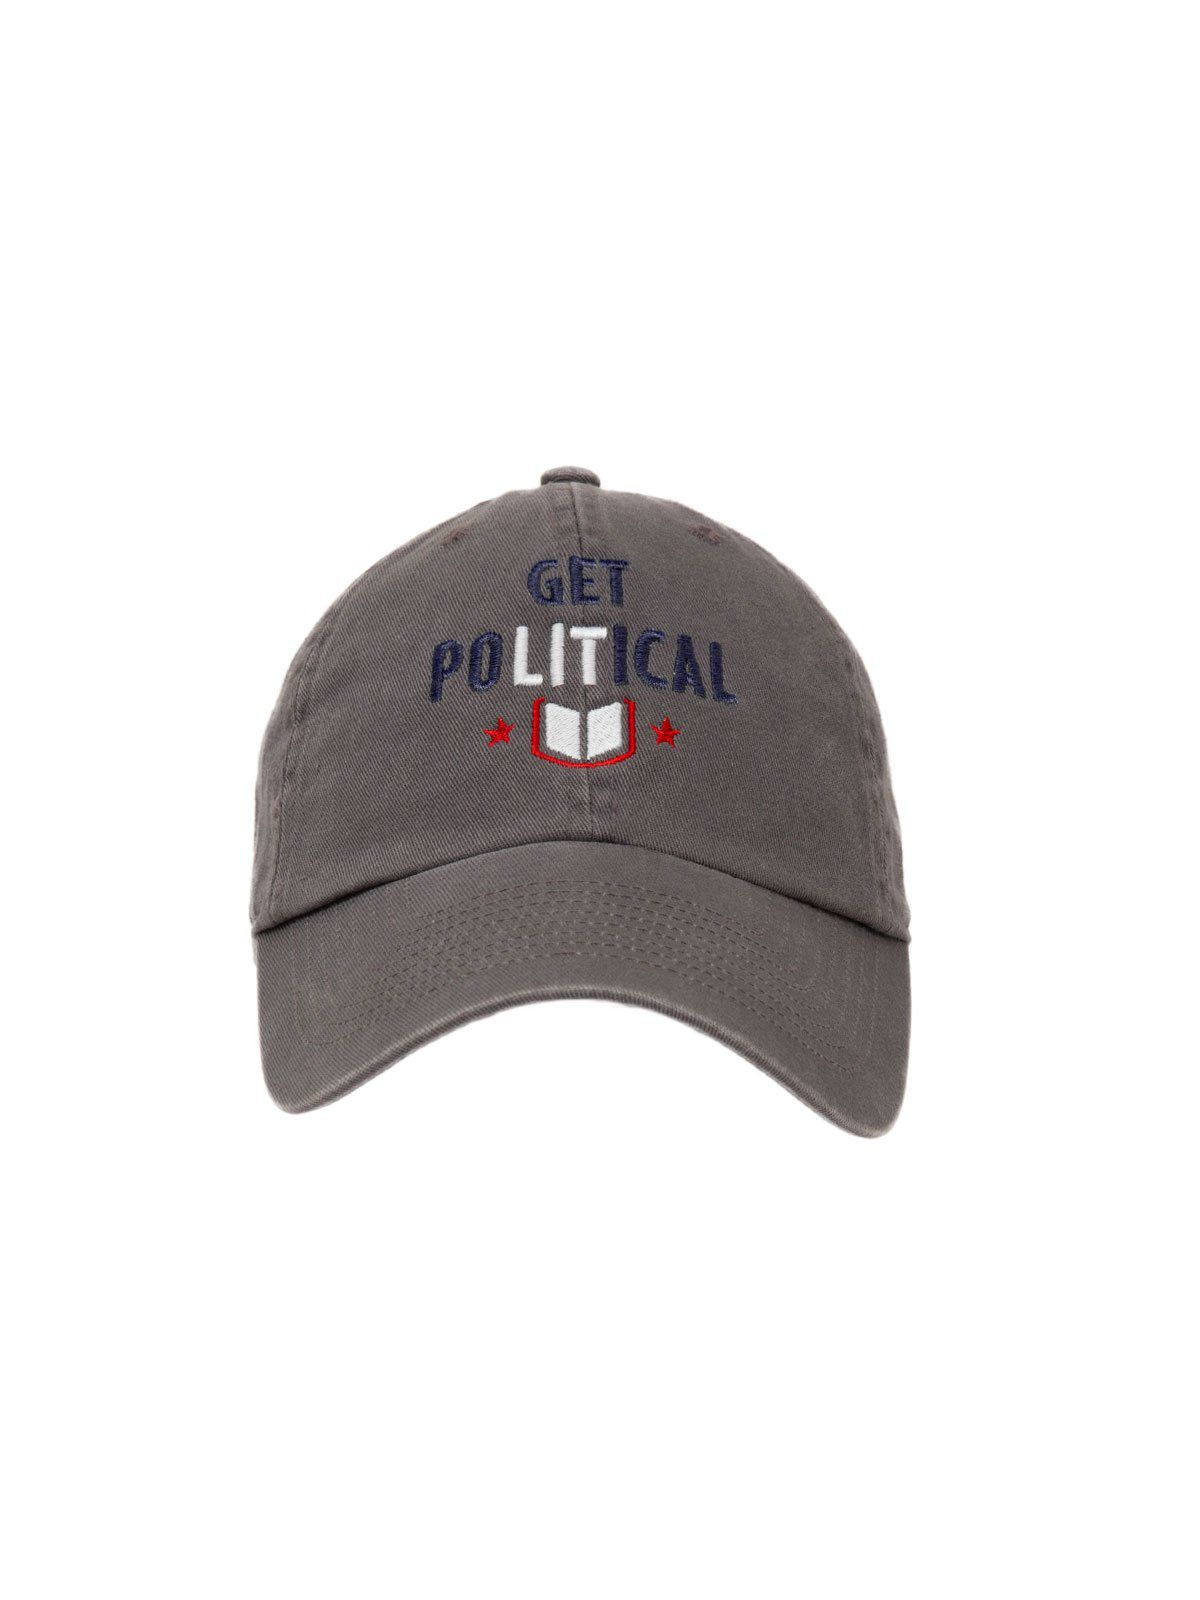 https://outofprint.com/collections/hats/products/get-political-cap